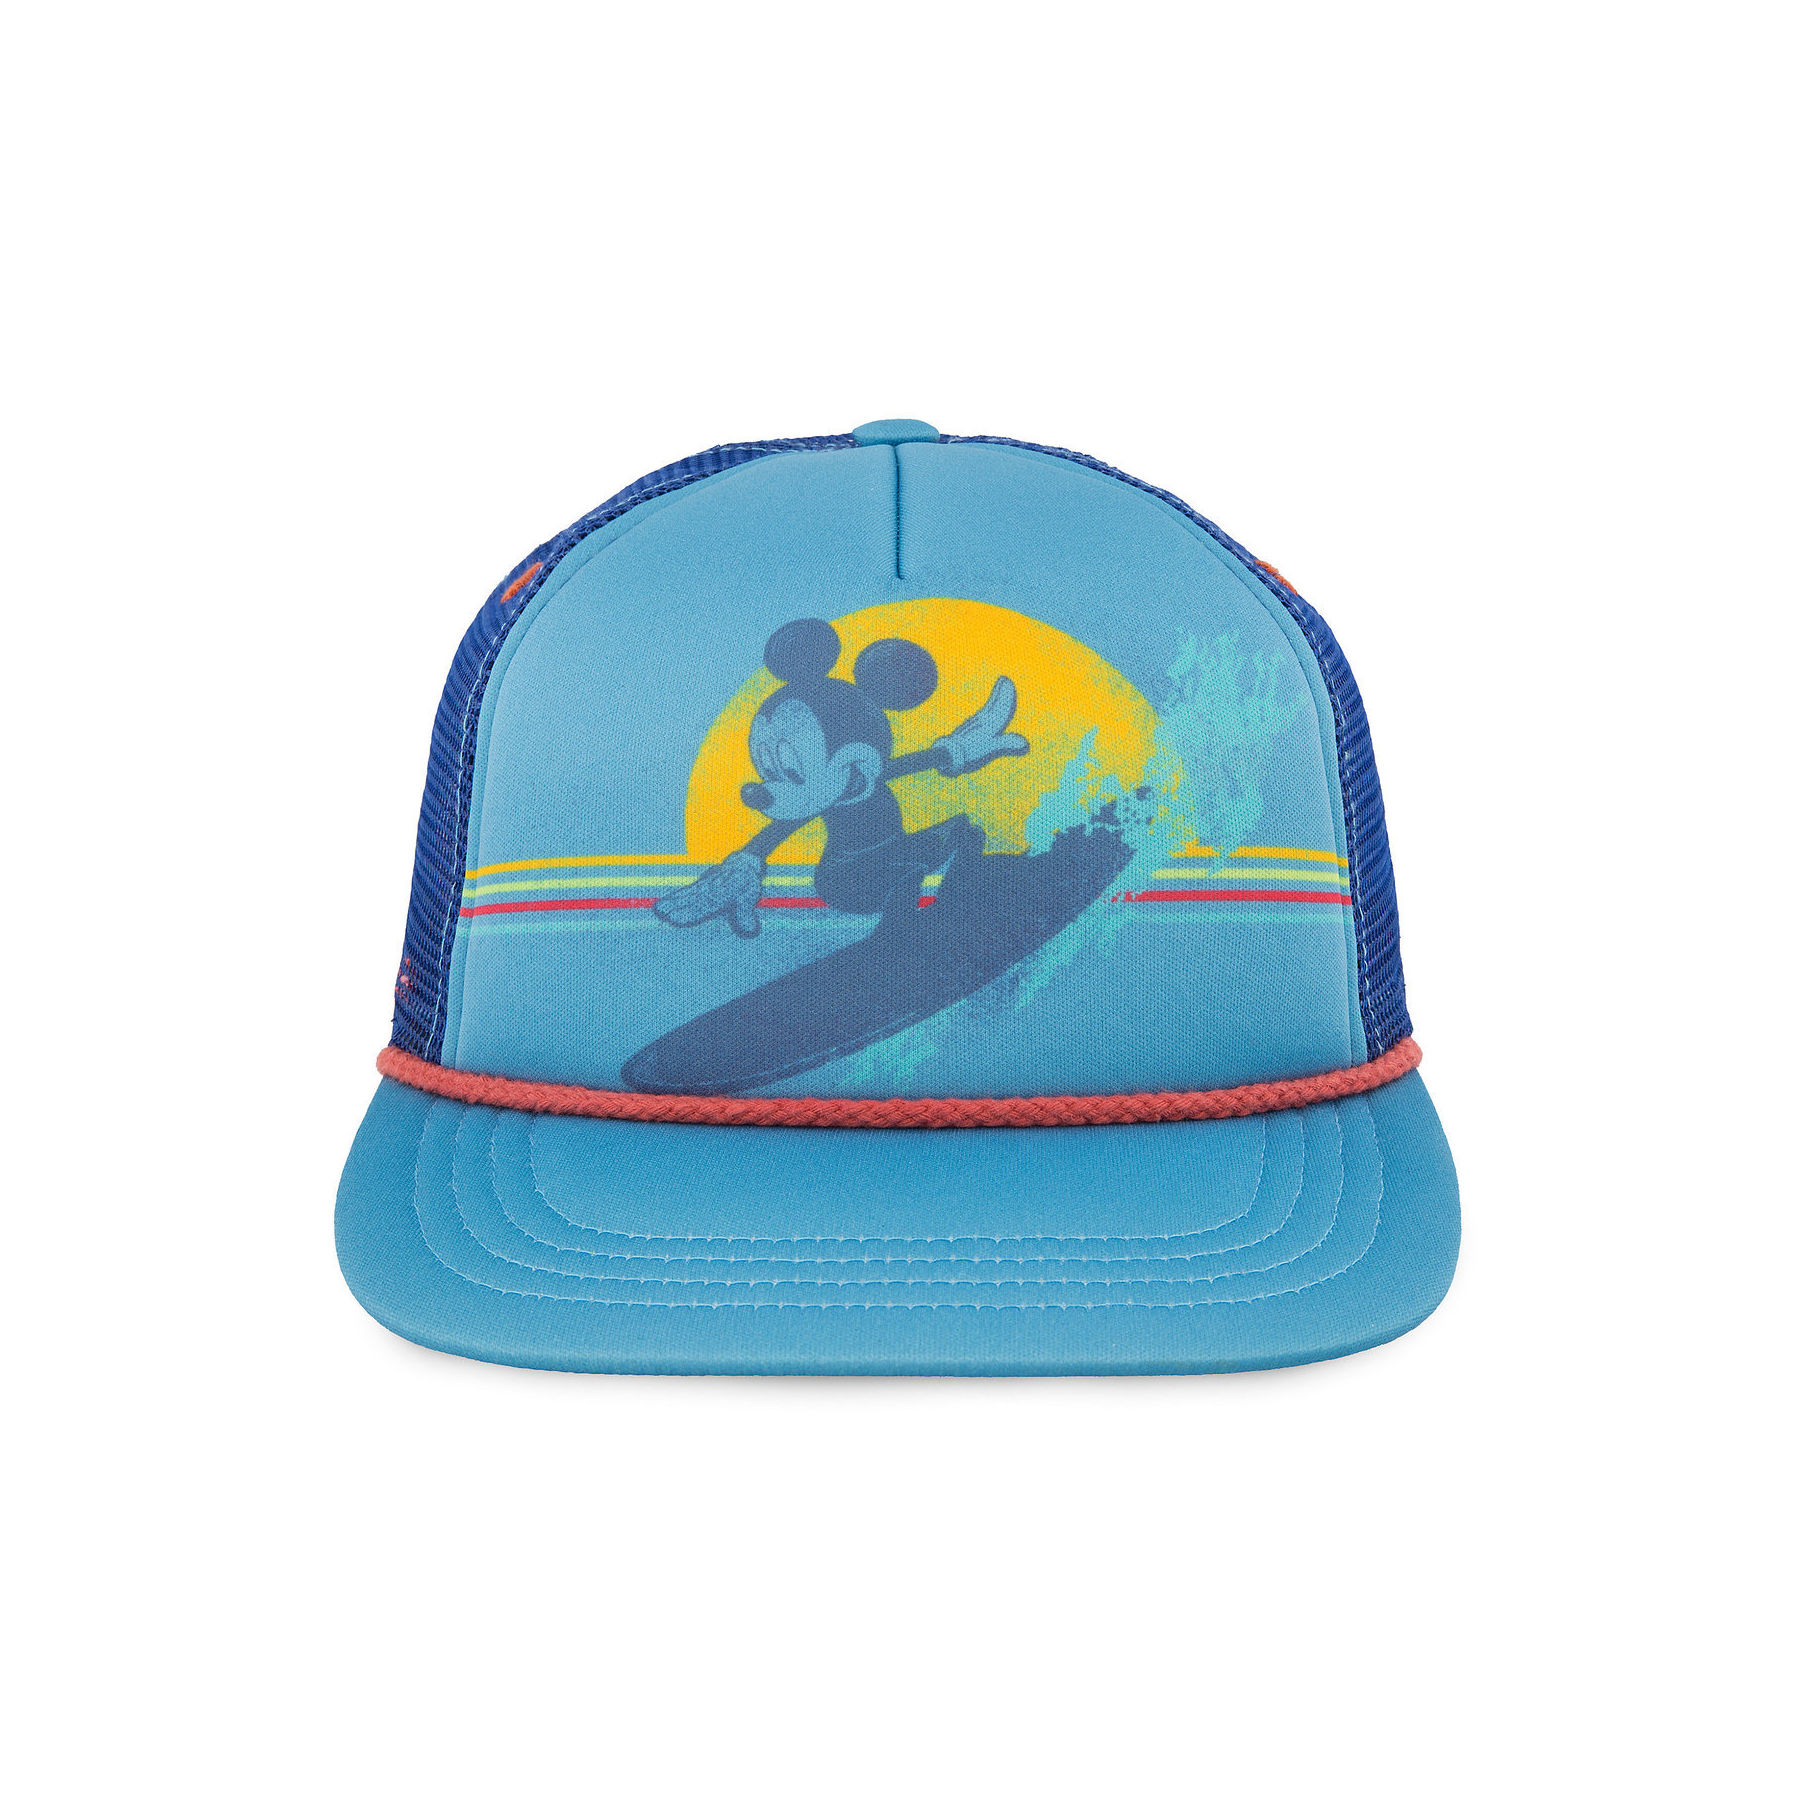 Disney Shop's Friends and Family Sale on Snap Back Hat